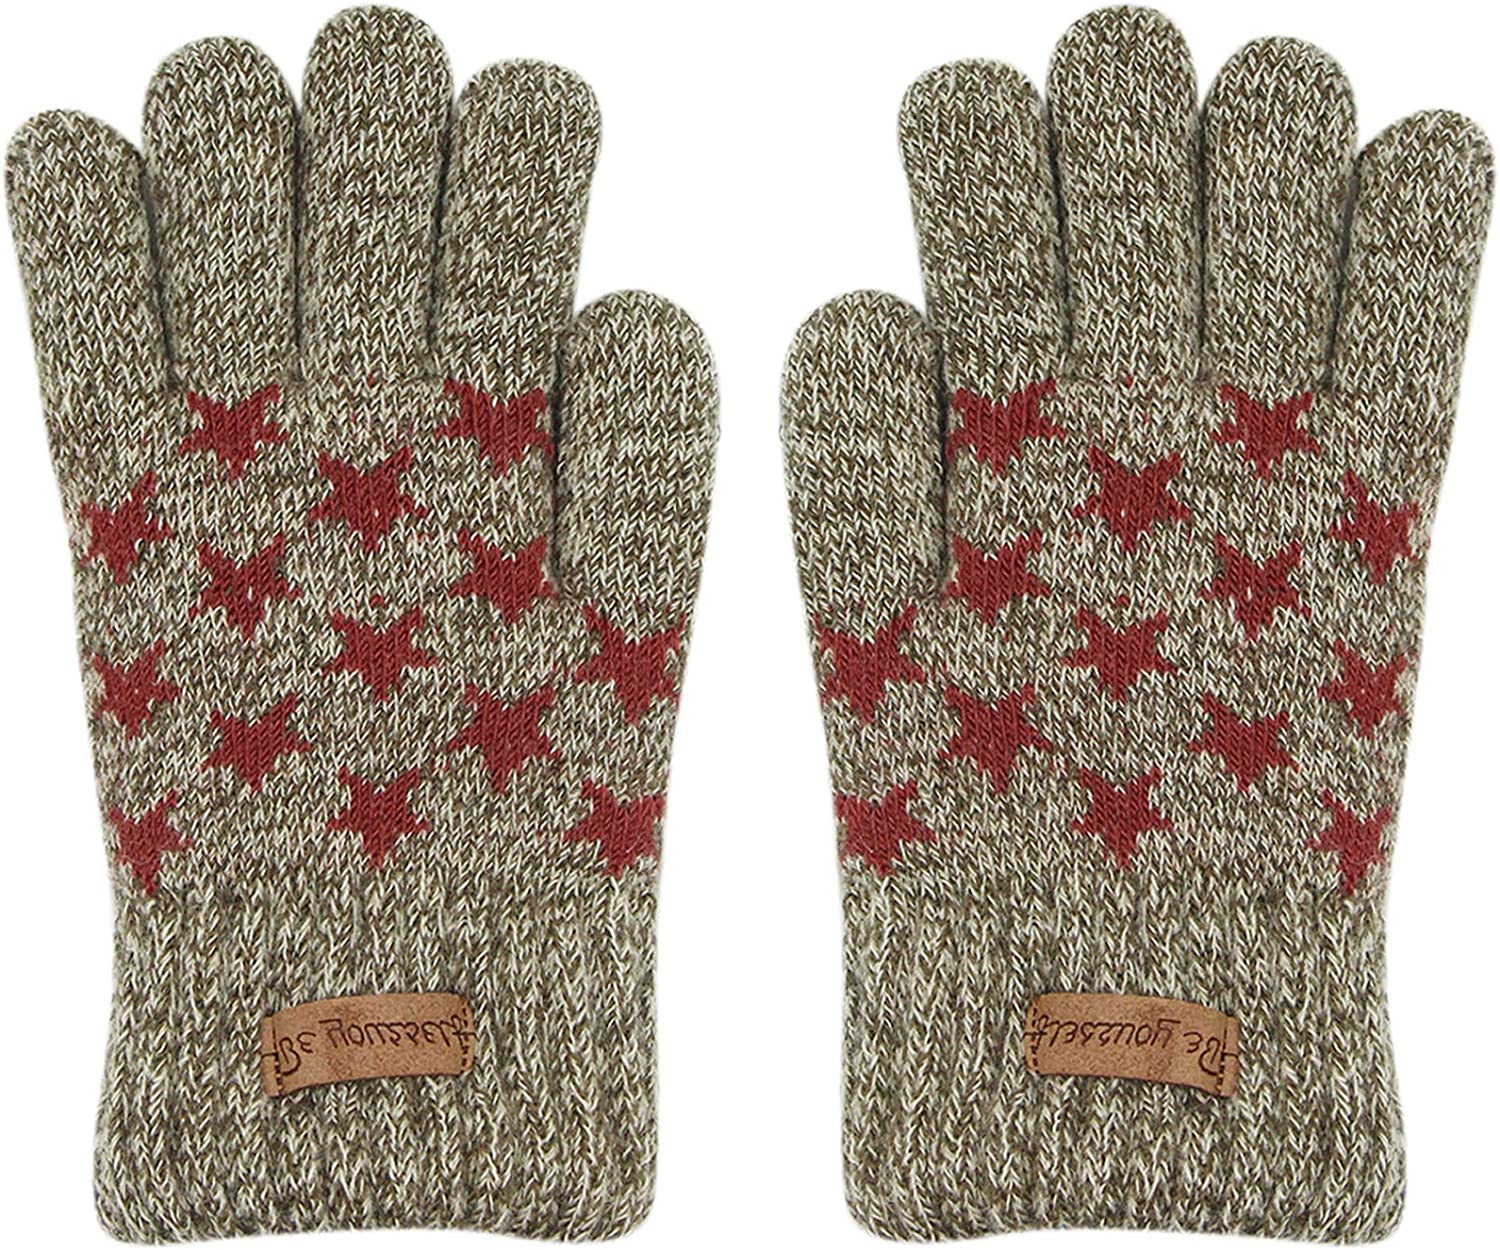 ZGMYC Kids Boys Warm Knit Fleece Lined Cold Weather Gloves Star Pattern Thermal Mittens, 3-6Y